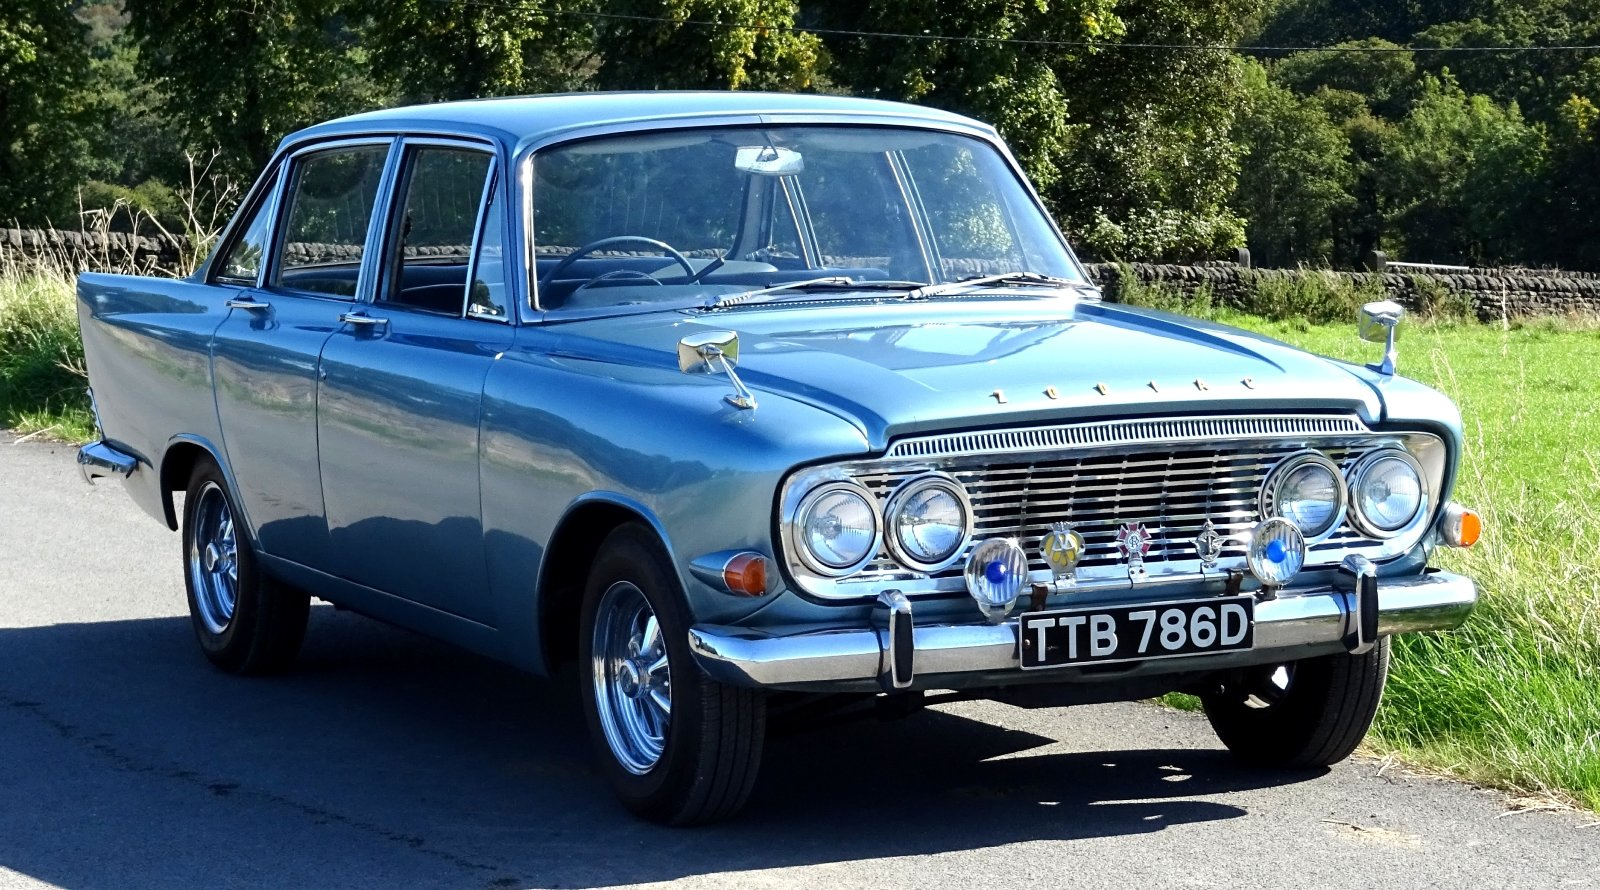 1966 FORD ZODIAC MK3 STUNNING DEEP BLUE PAINT & SPARKLING CHROME For Sale (picture 1 of 6)